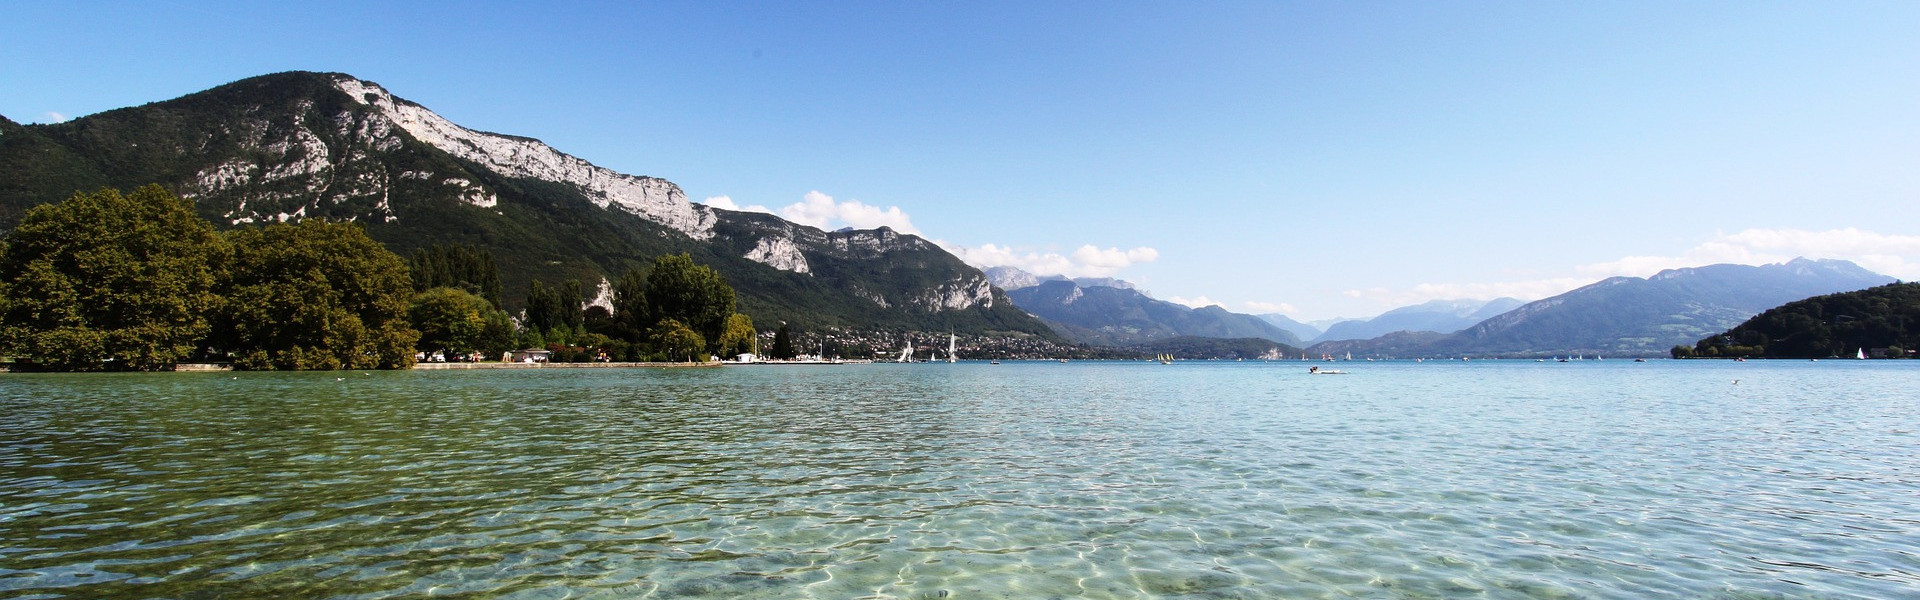 Destination image of Annecy